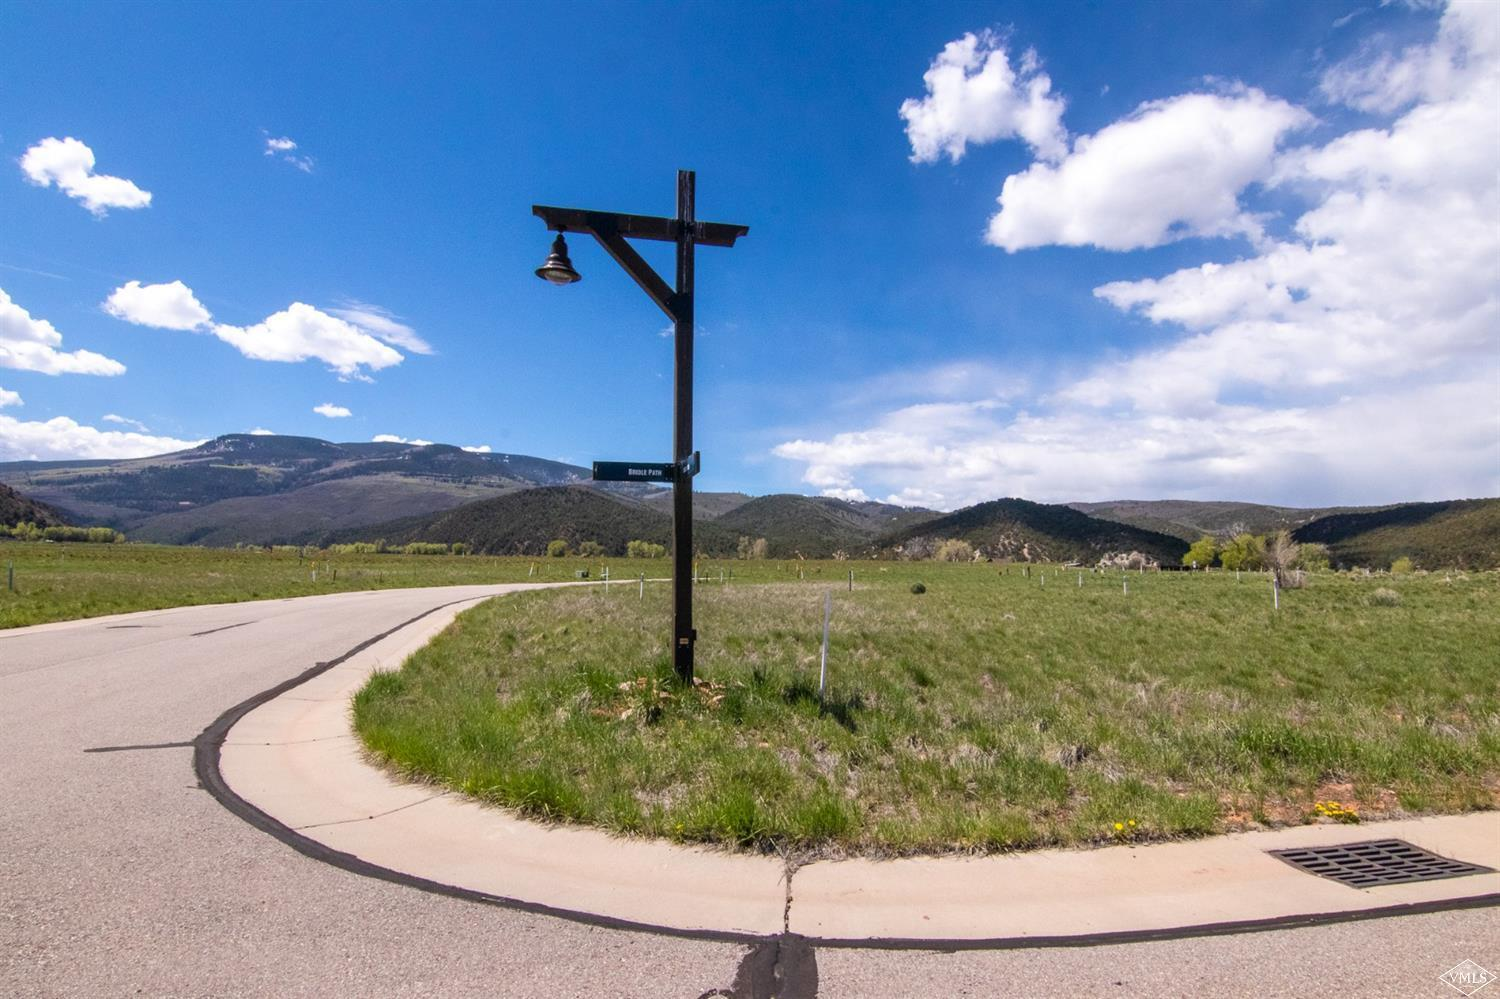 192 Bridle Path, Gypsum, CO 81637 Property Photo - Gypsum, CO real estate listing